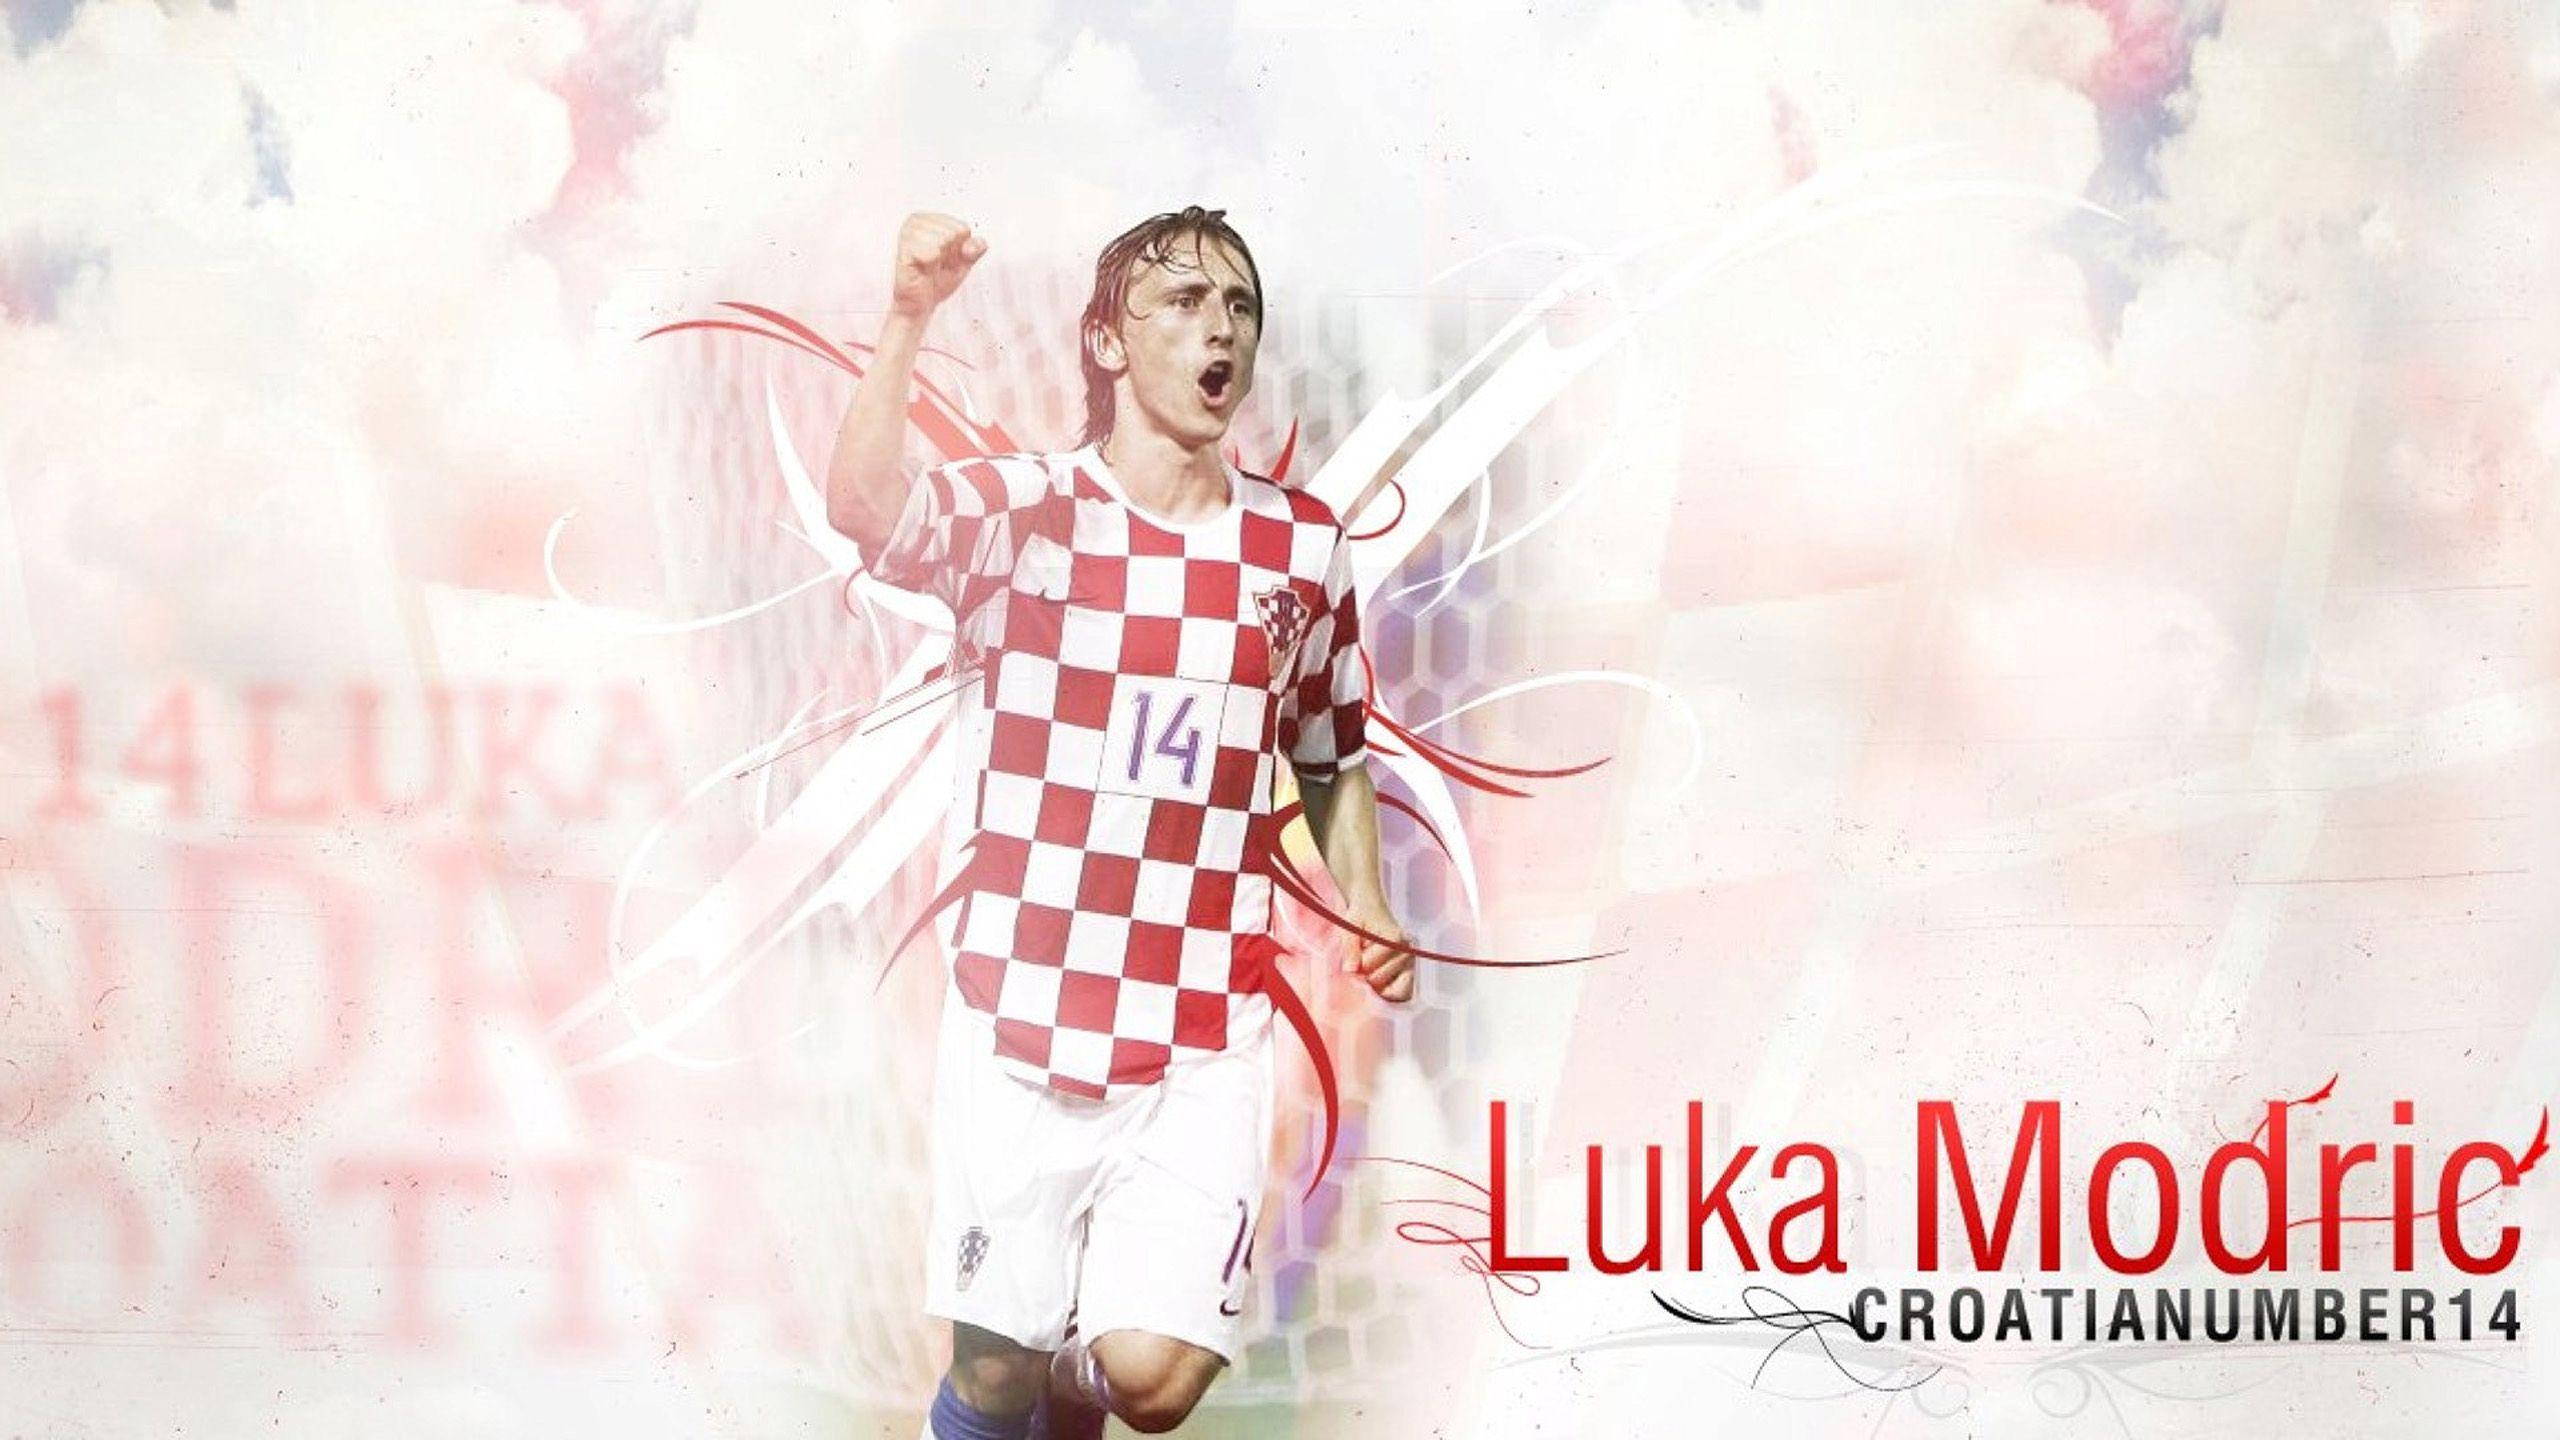 Luka Modrić is a Croatian professional footballer who plays for ...